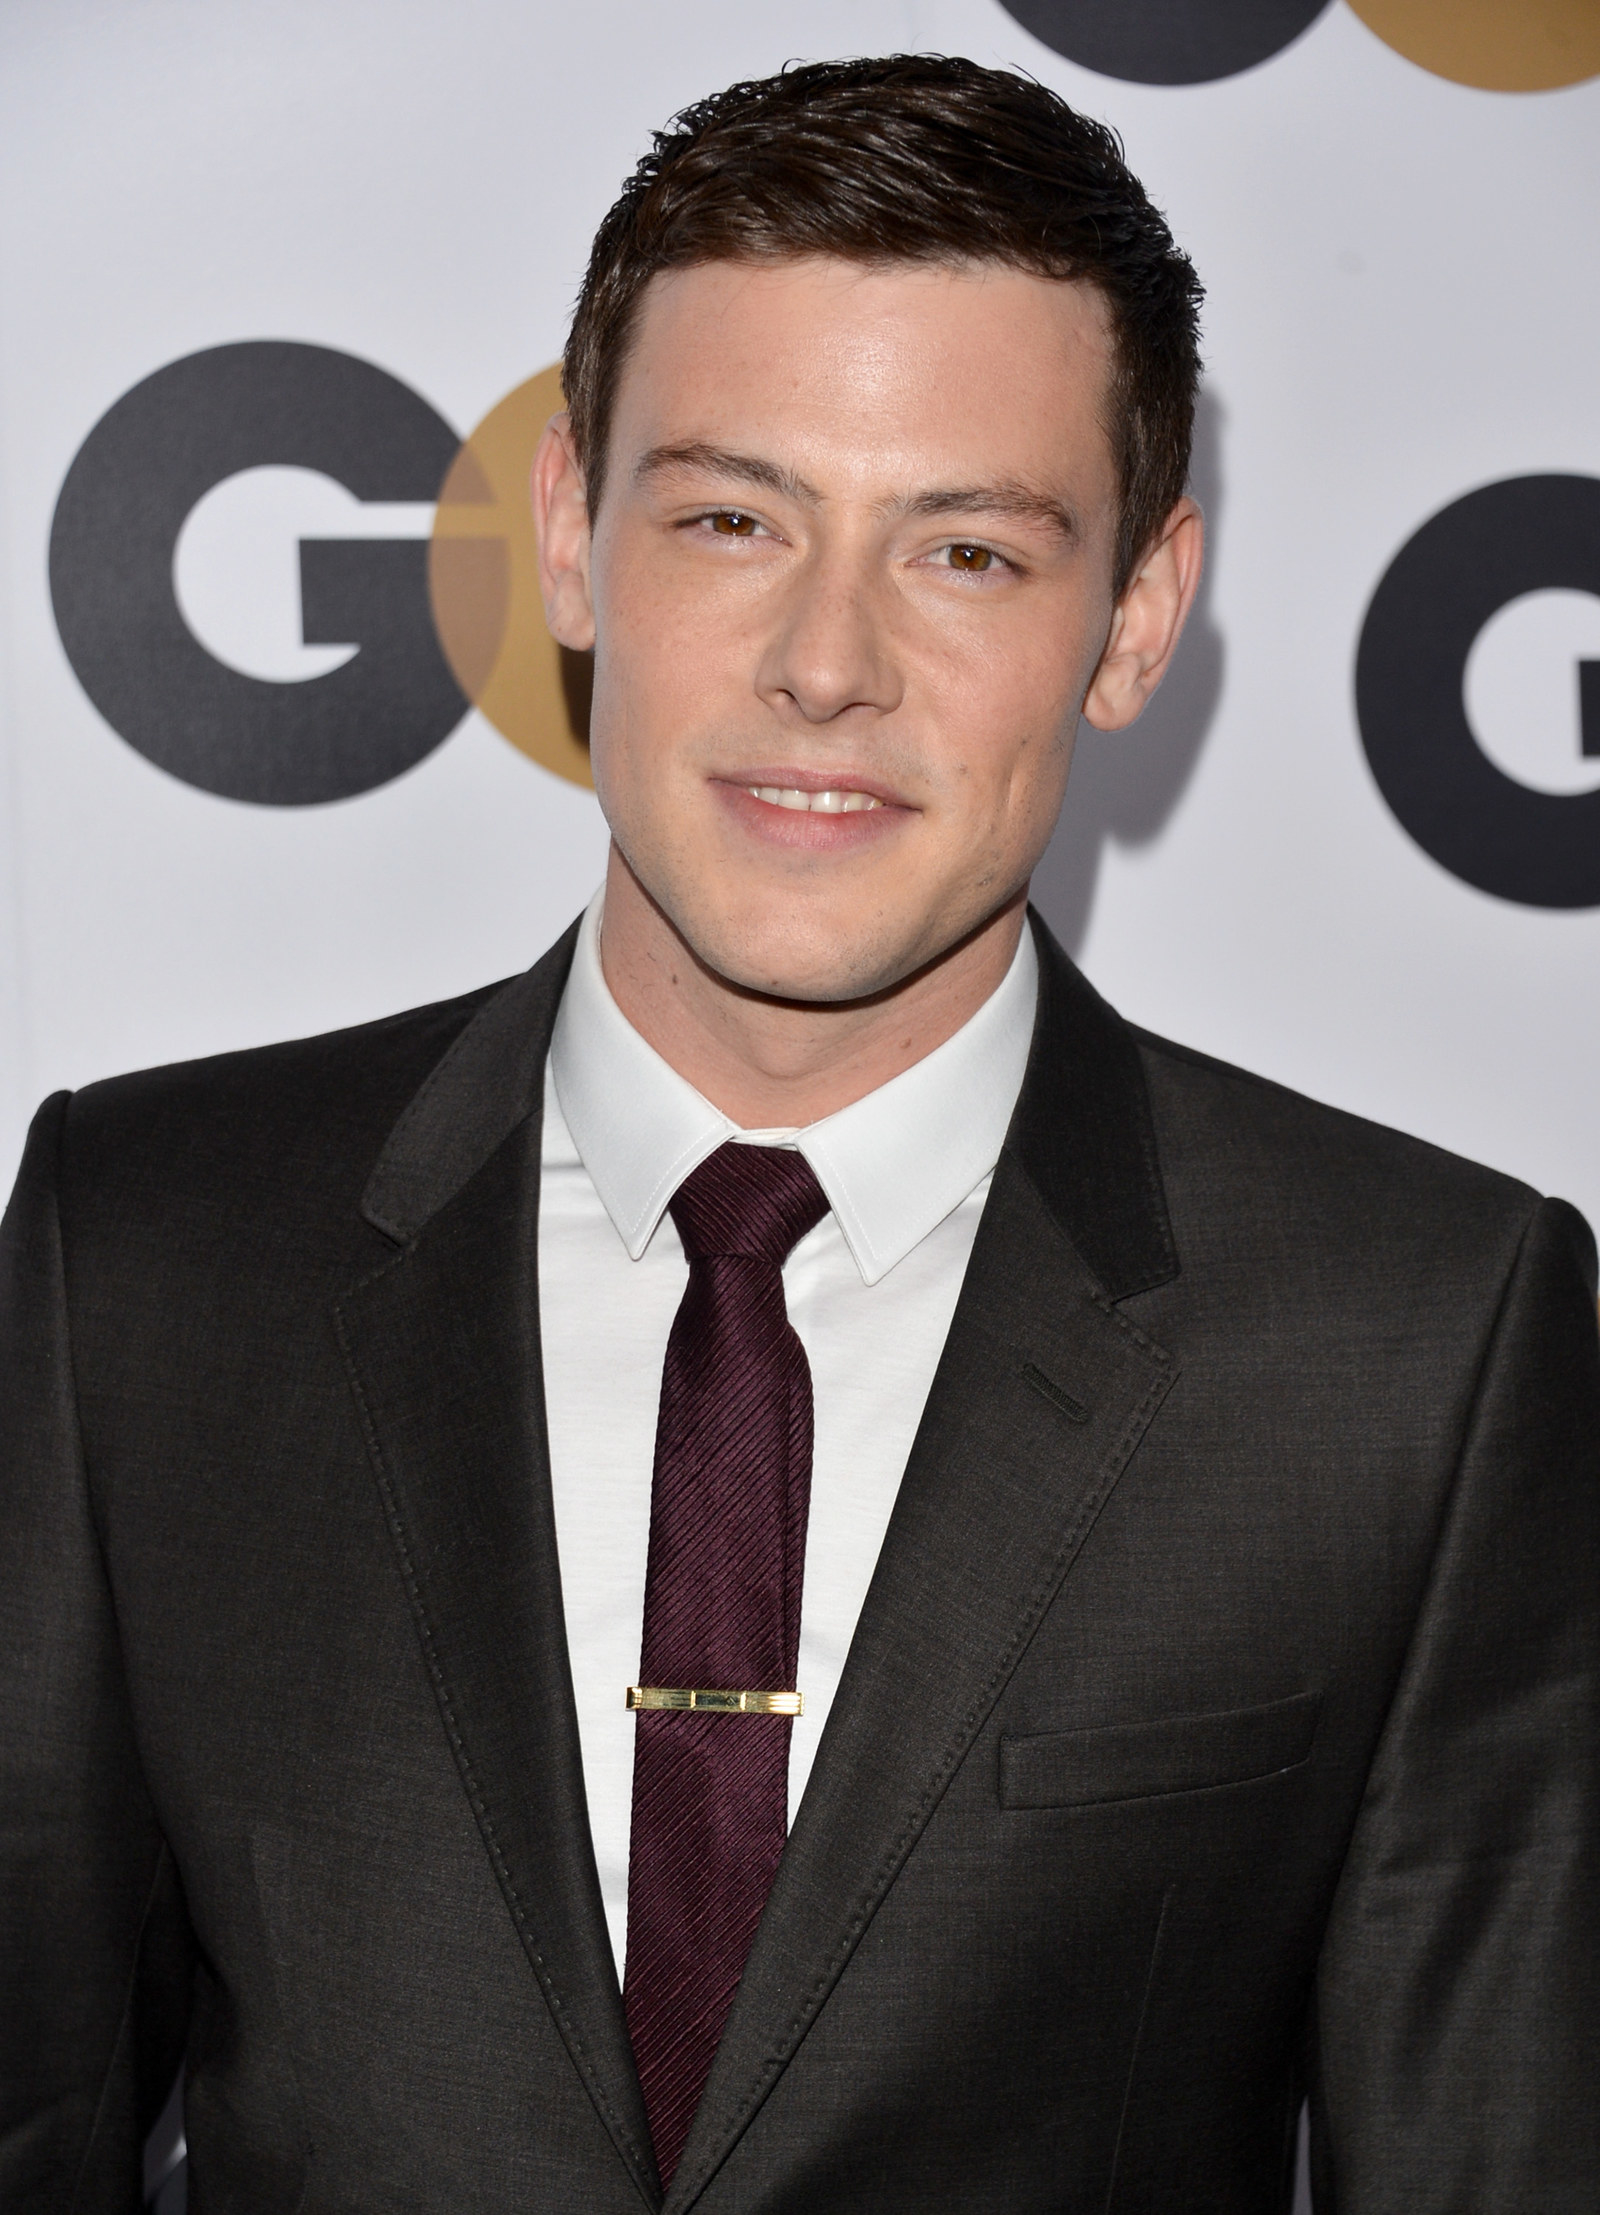 Also,  Glee  star Cory Monteith appeared in the same episode as Alden.